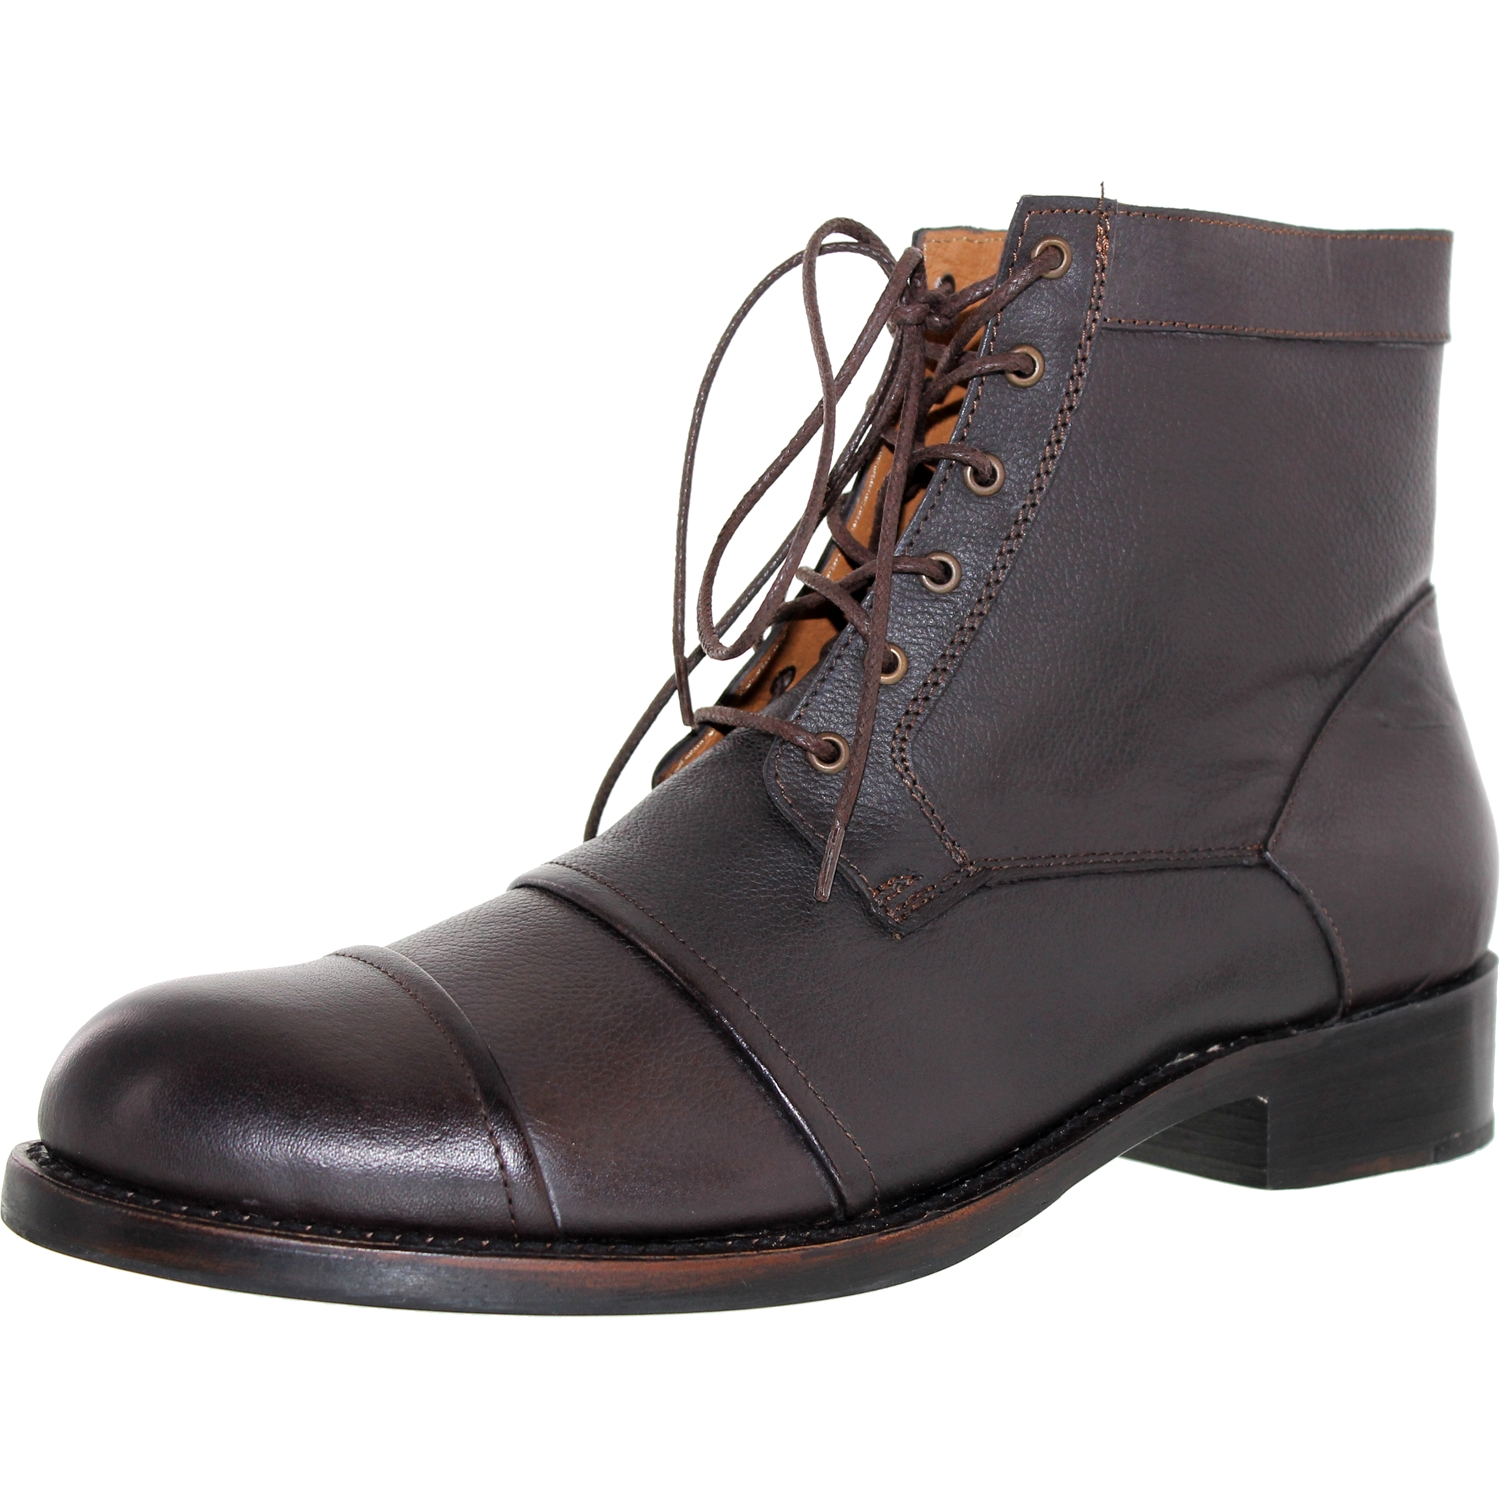 J.D. Fisk Men's Ono Brown Ankle-High Leather Boot - 10M